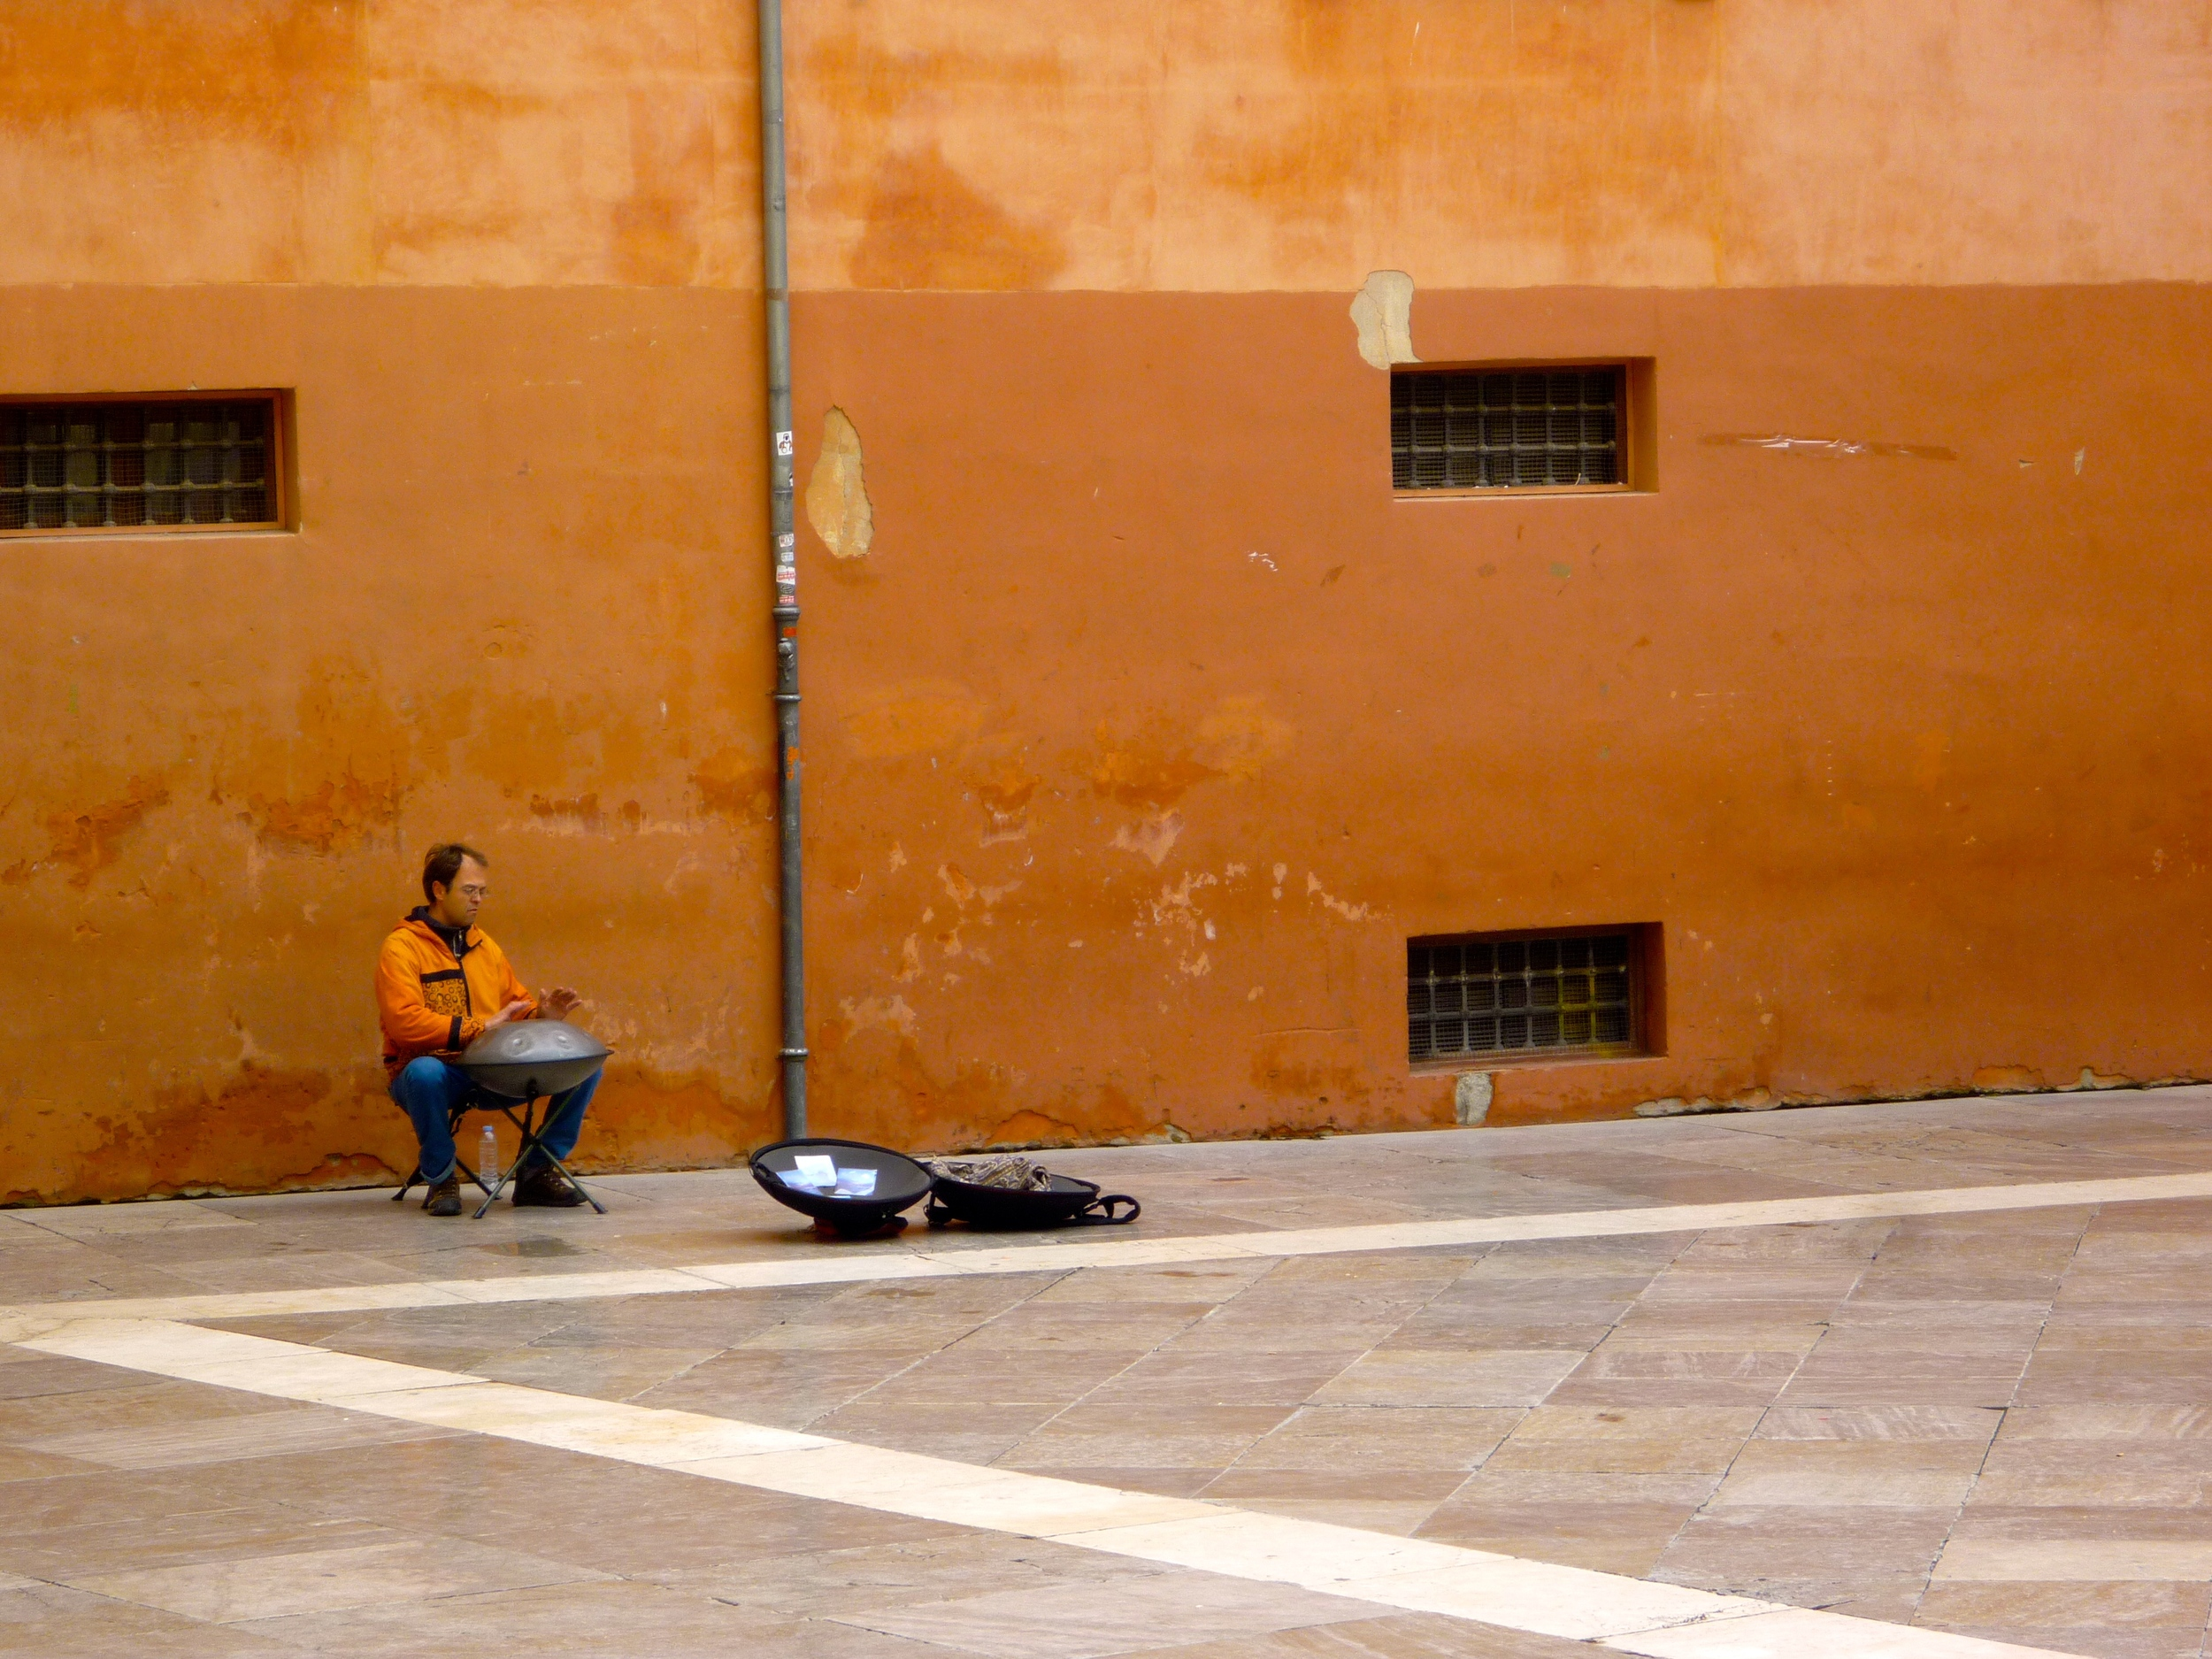 A street musician playing the hang/handpan